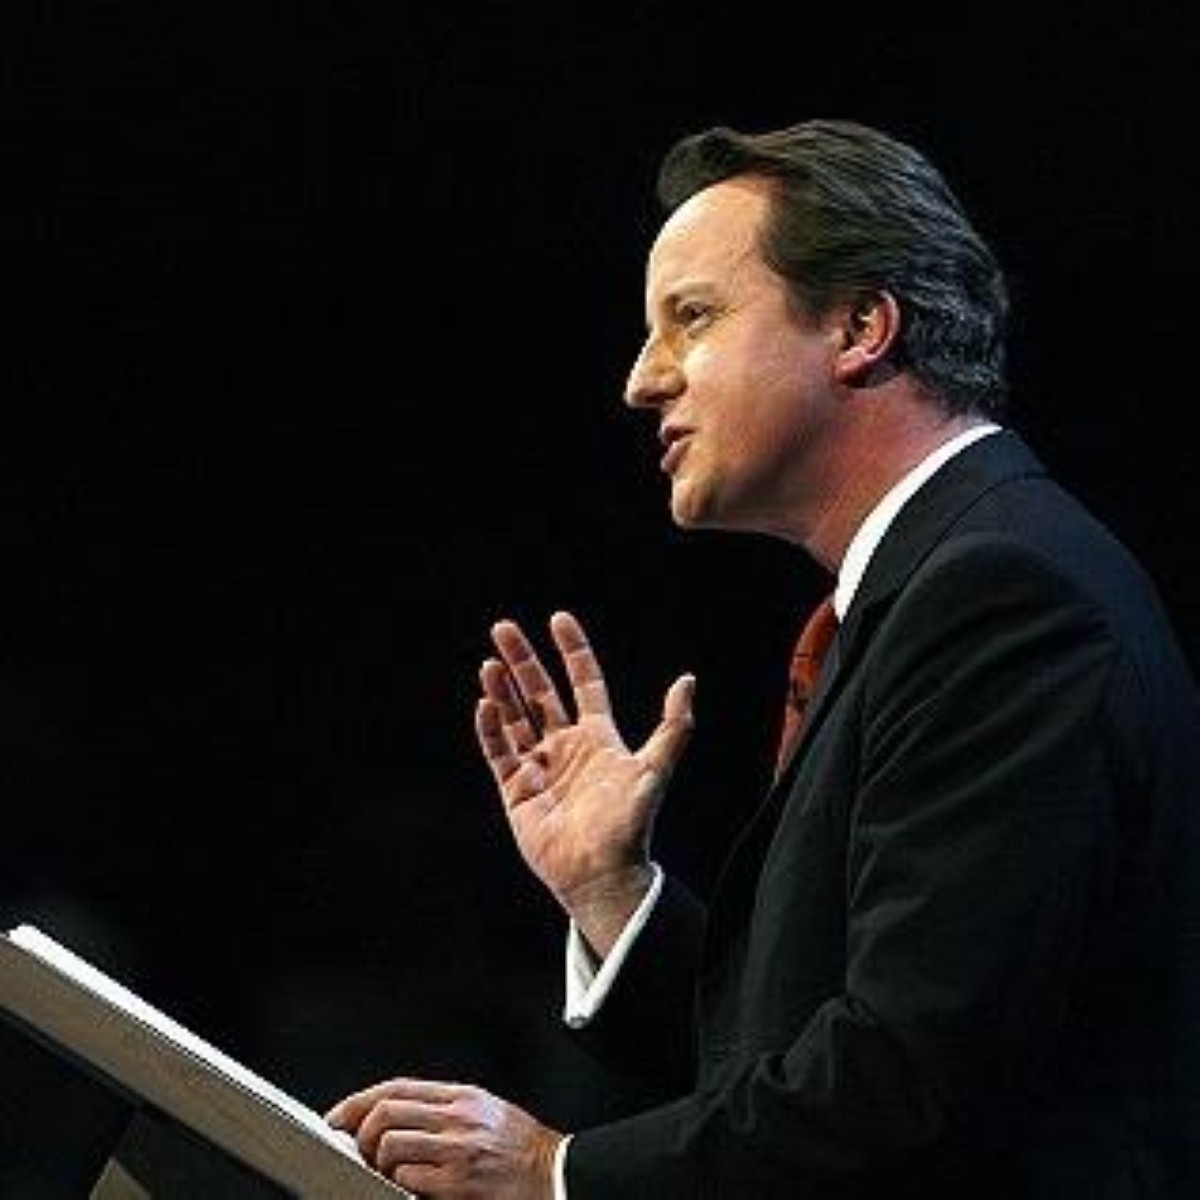 """David Cameron wants to make the Conservatives """"the party of the NHS"""""""